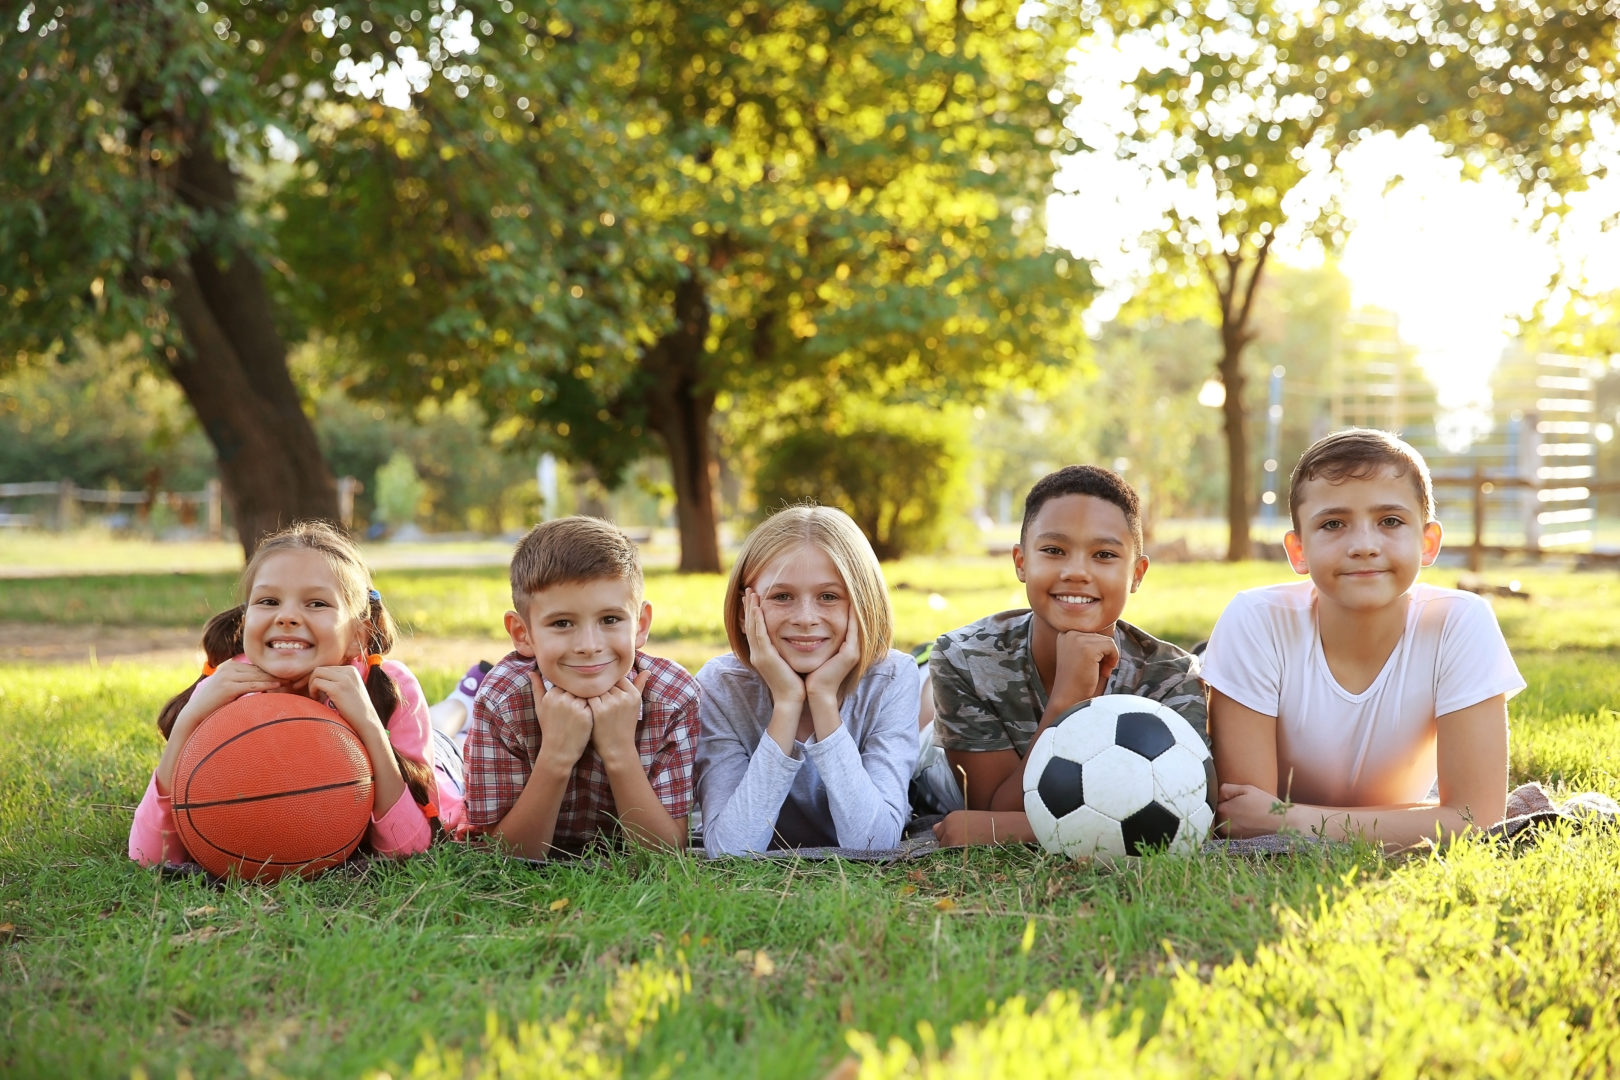 Five kids lying on bellies in grass with soccer ball and basketball